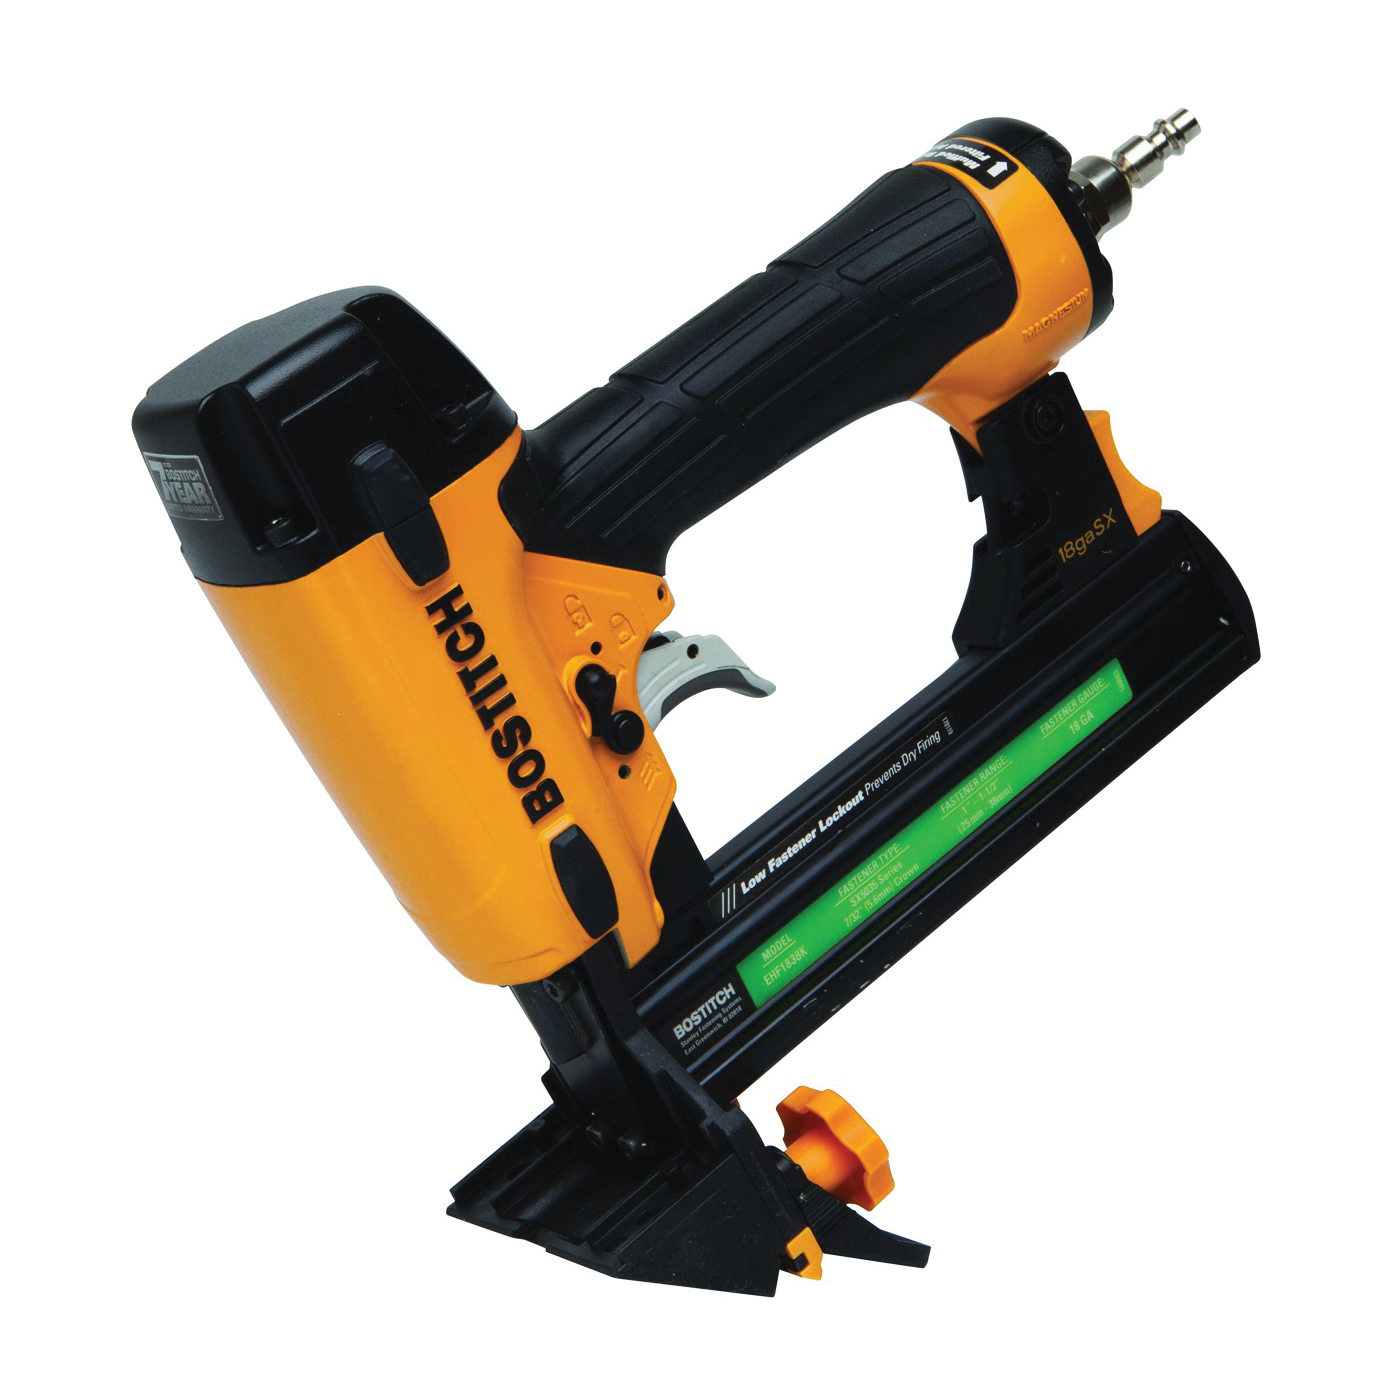 Picture of Bostitch EHF1838K Flooring Stapler, 1 to 1-1/2 in W Crown, 1 to 1-1/2 in L Leg, 100 Magazine, 160 in-lb Air